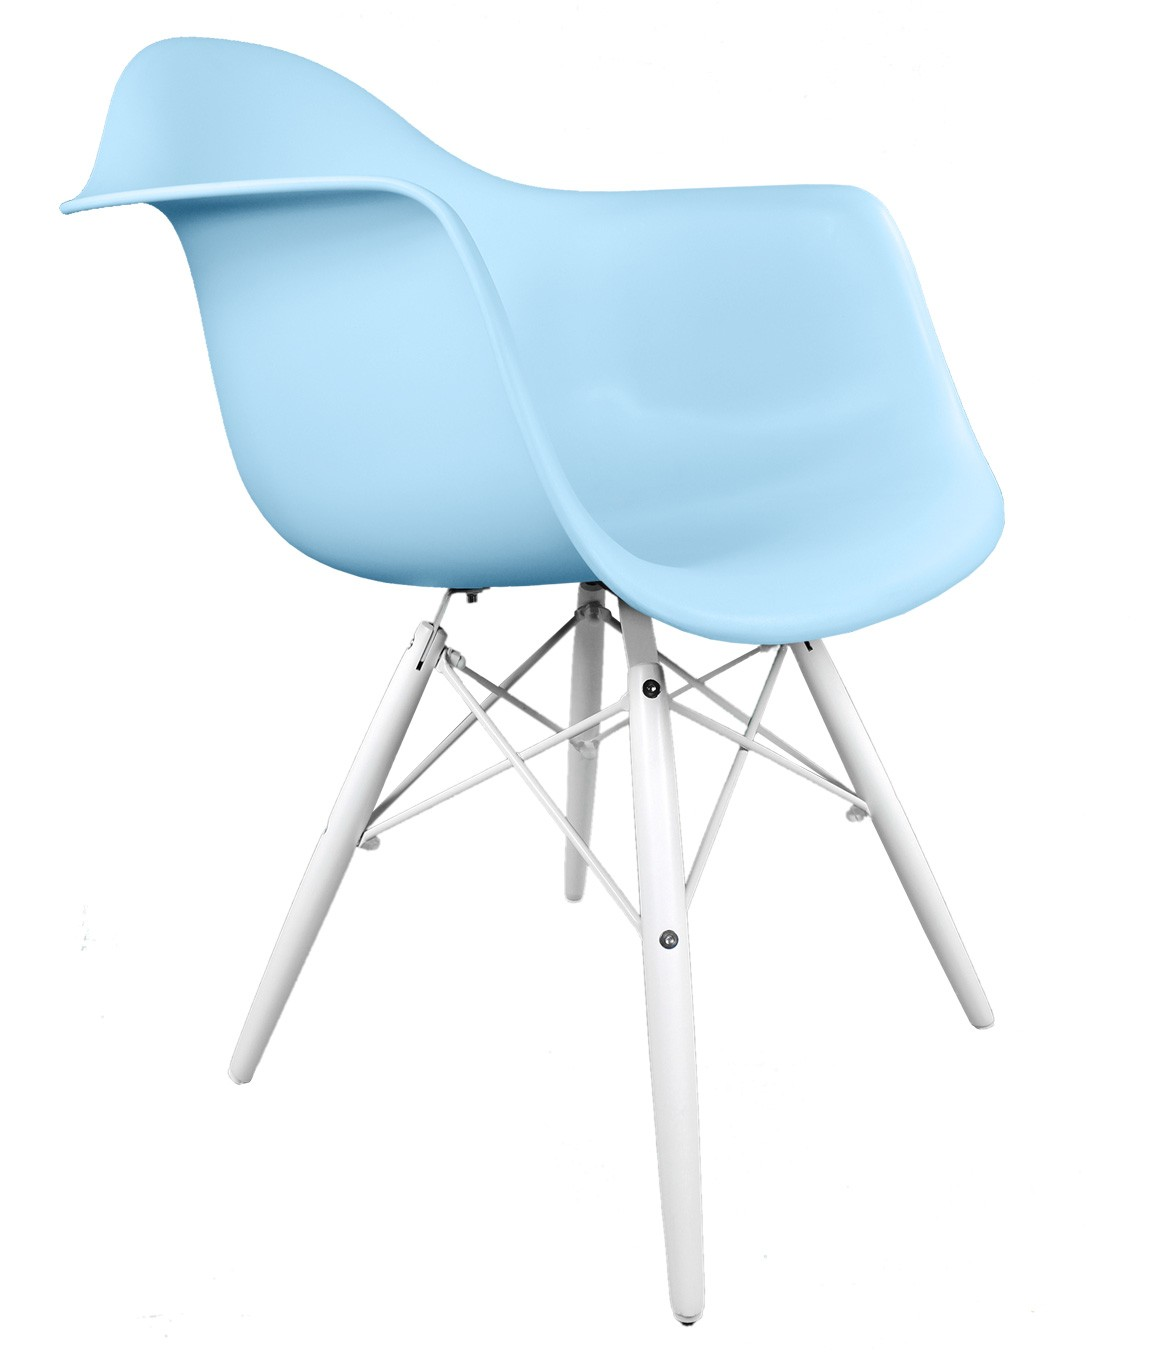 Eames Style DAW Molded Light Blue Plastic Accent Arm Chair with